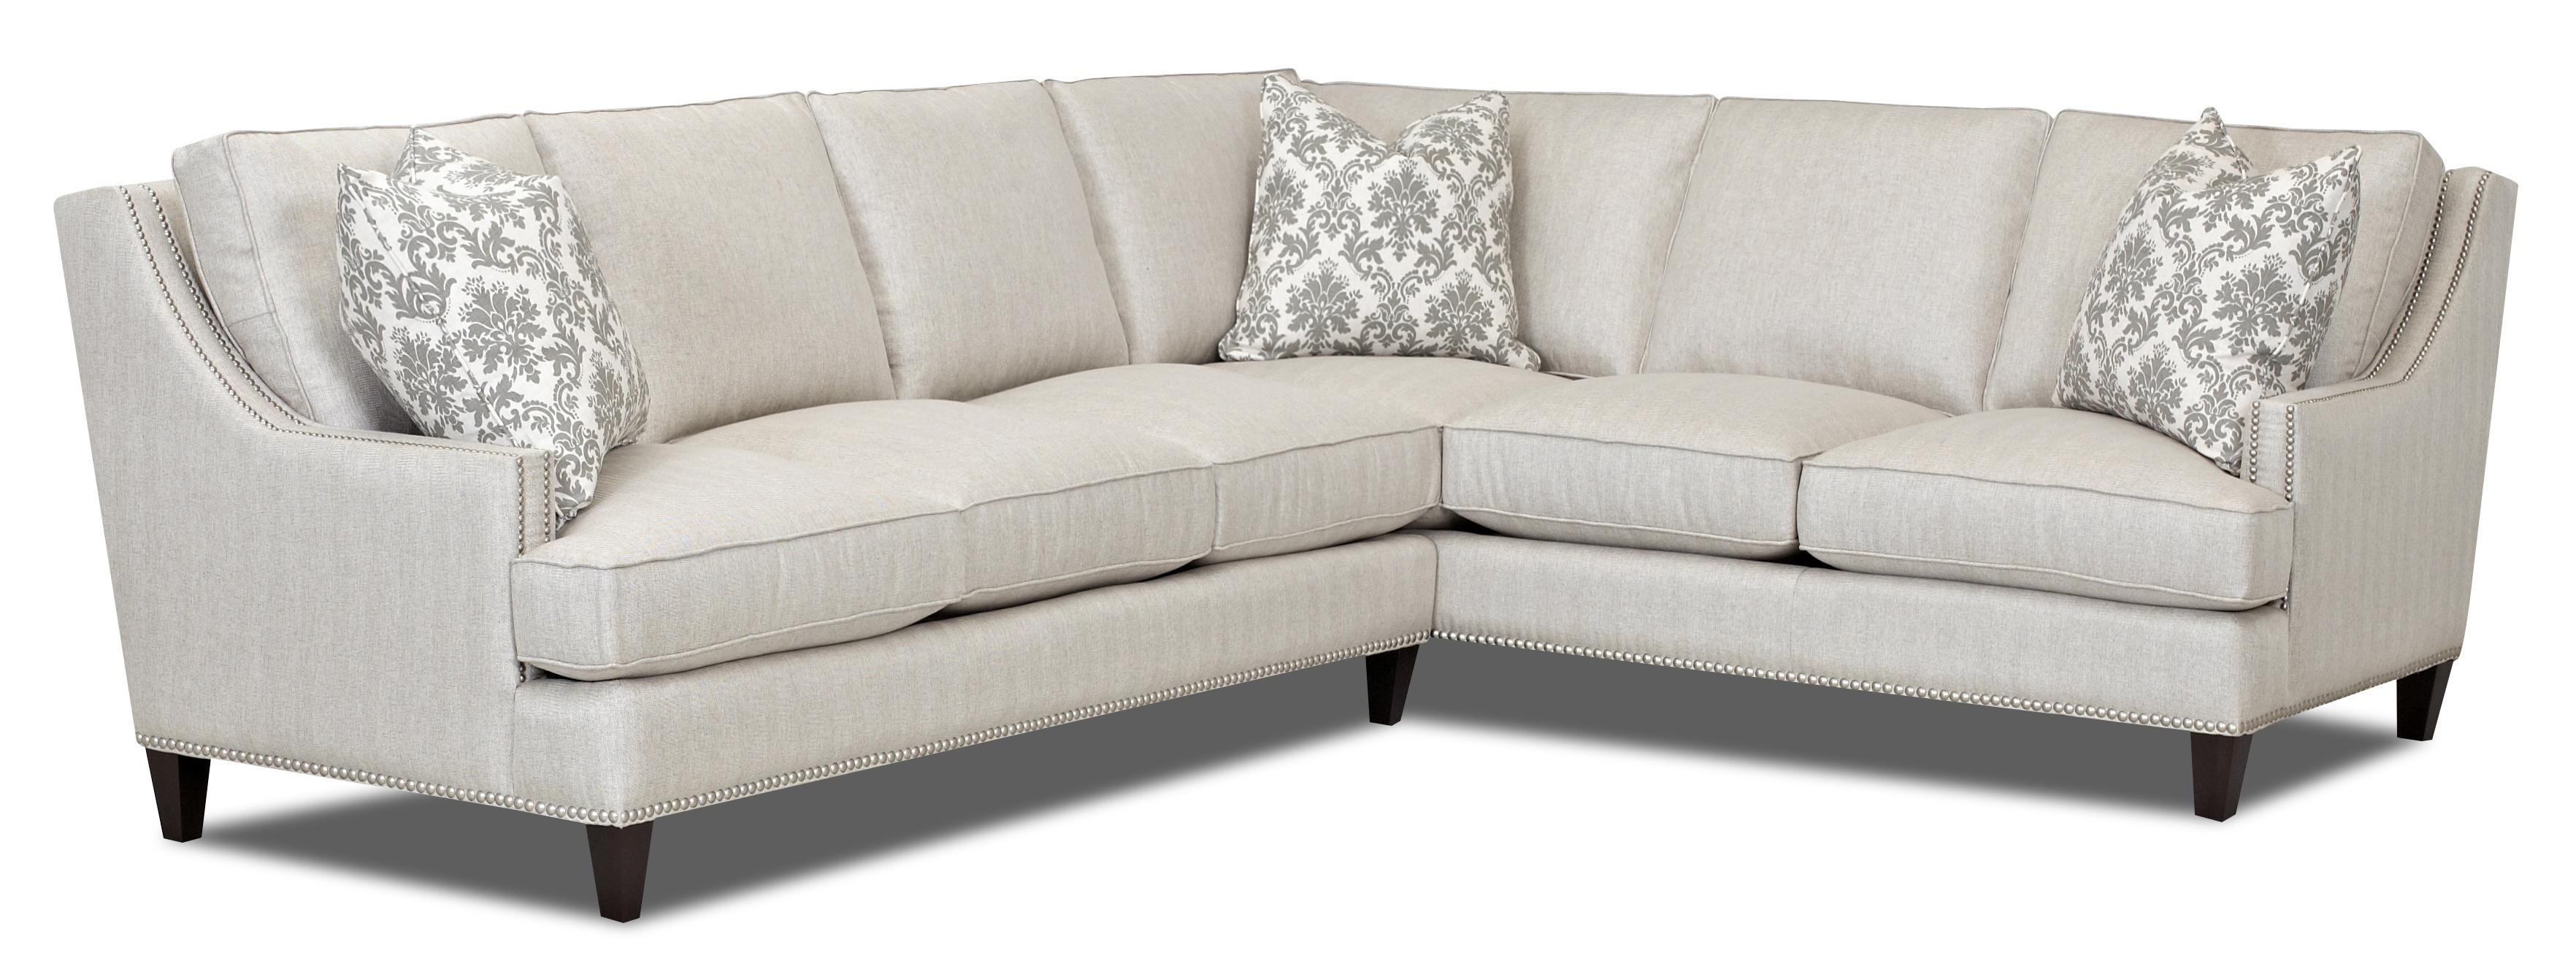 Transitional 2 piece sectional by klaussner wolf and for Sectional sofas wolf furniture